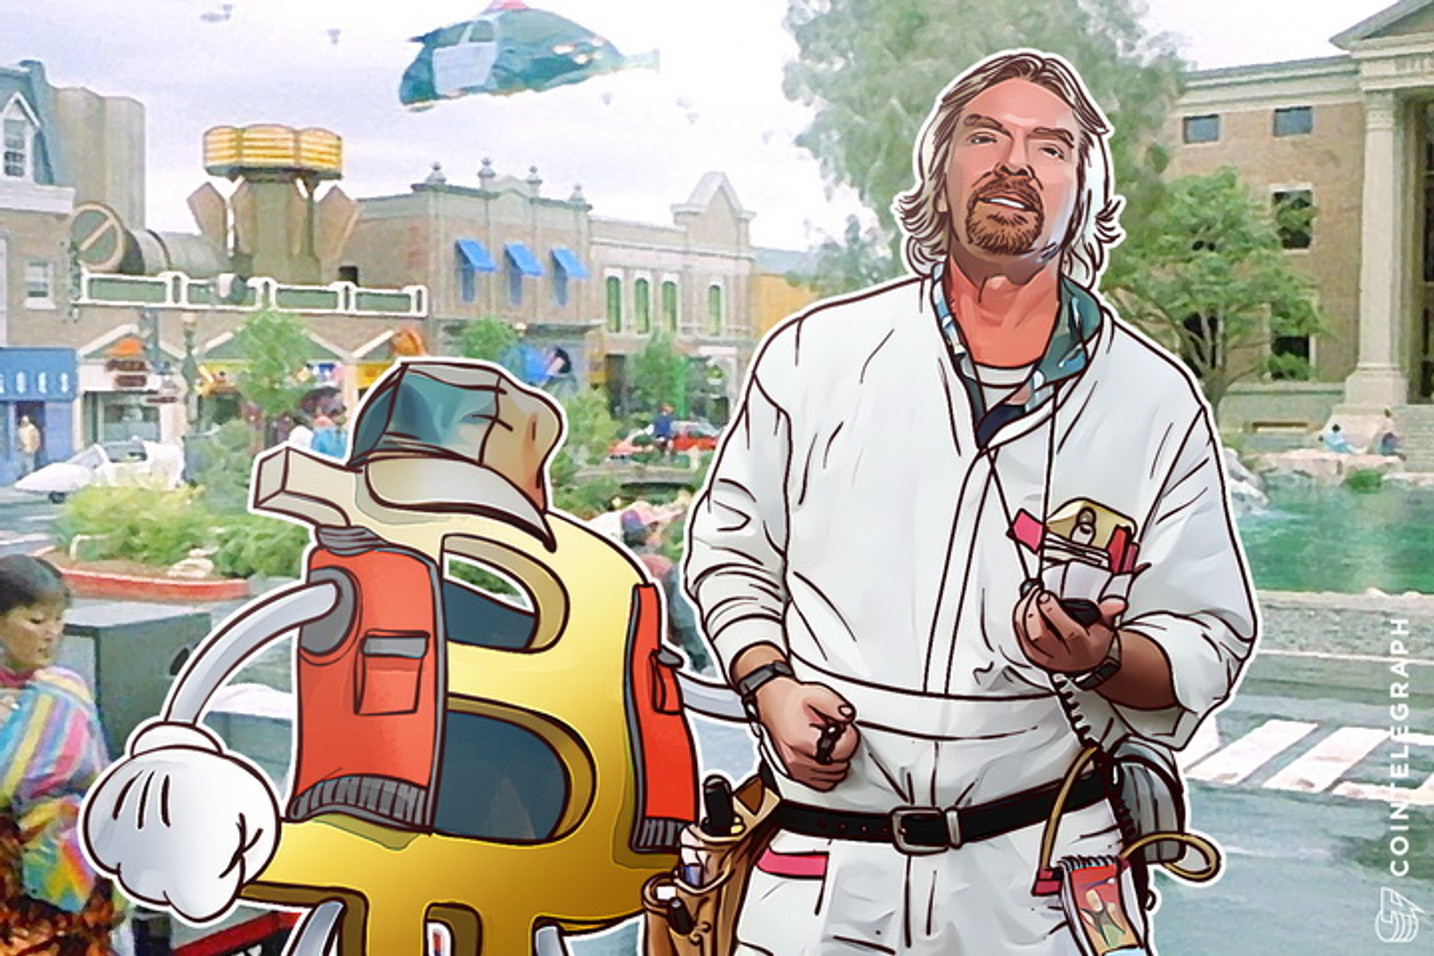 Bitcoin Future: When GBPcoin of Branson Wins Over USDcoin of Trump